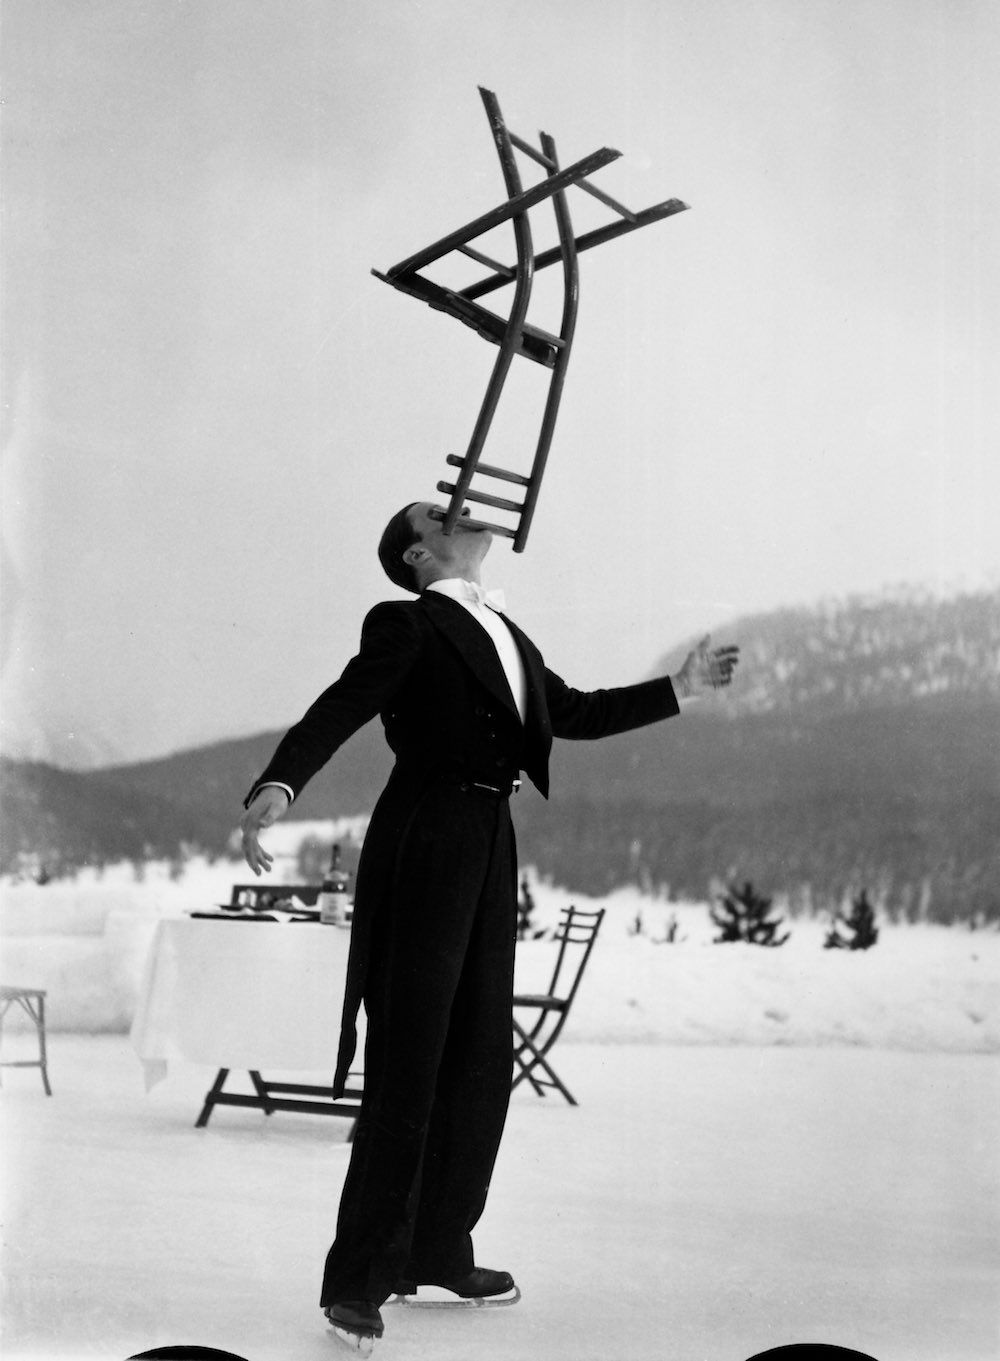 The ice skating waiters of the Grand Hotel in St. Moritz, Switzerland, were a popular attraction in the 1930s.